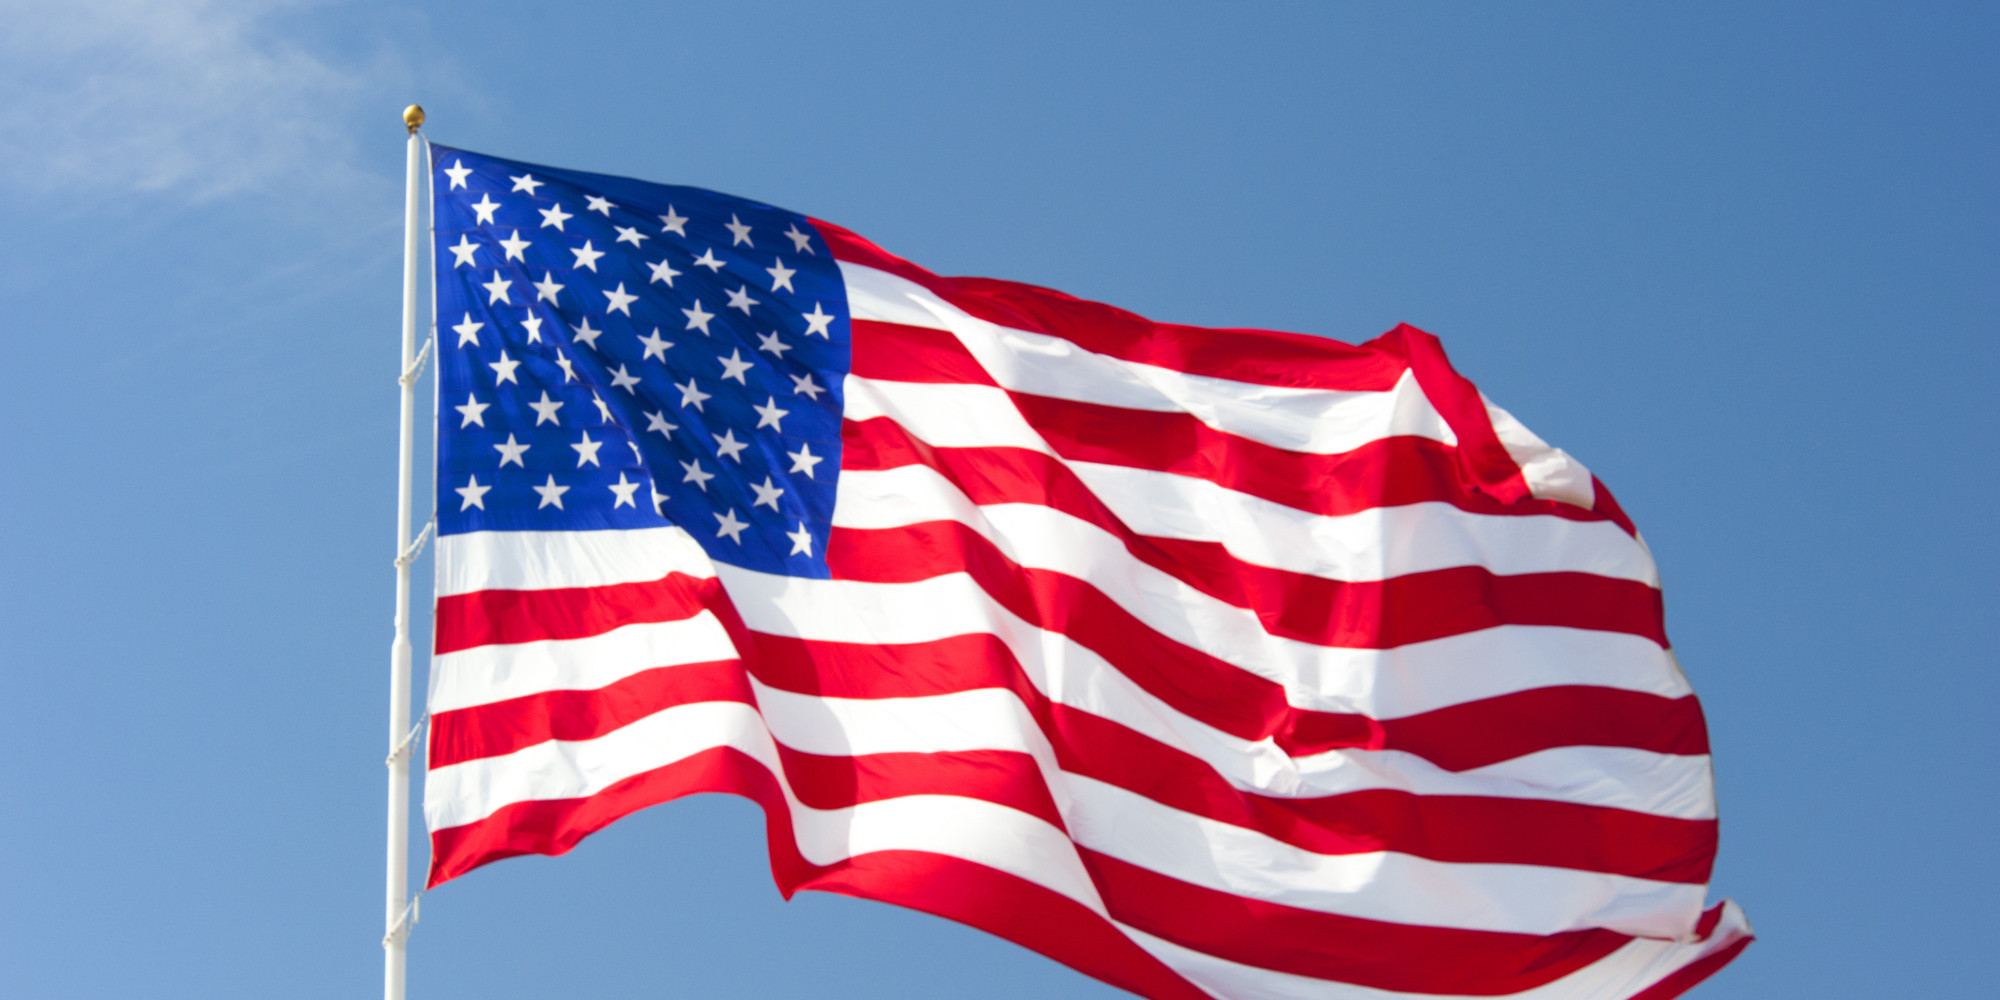 13 Things You Probably Don 39 T Know About The American Flag